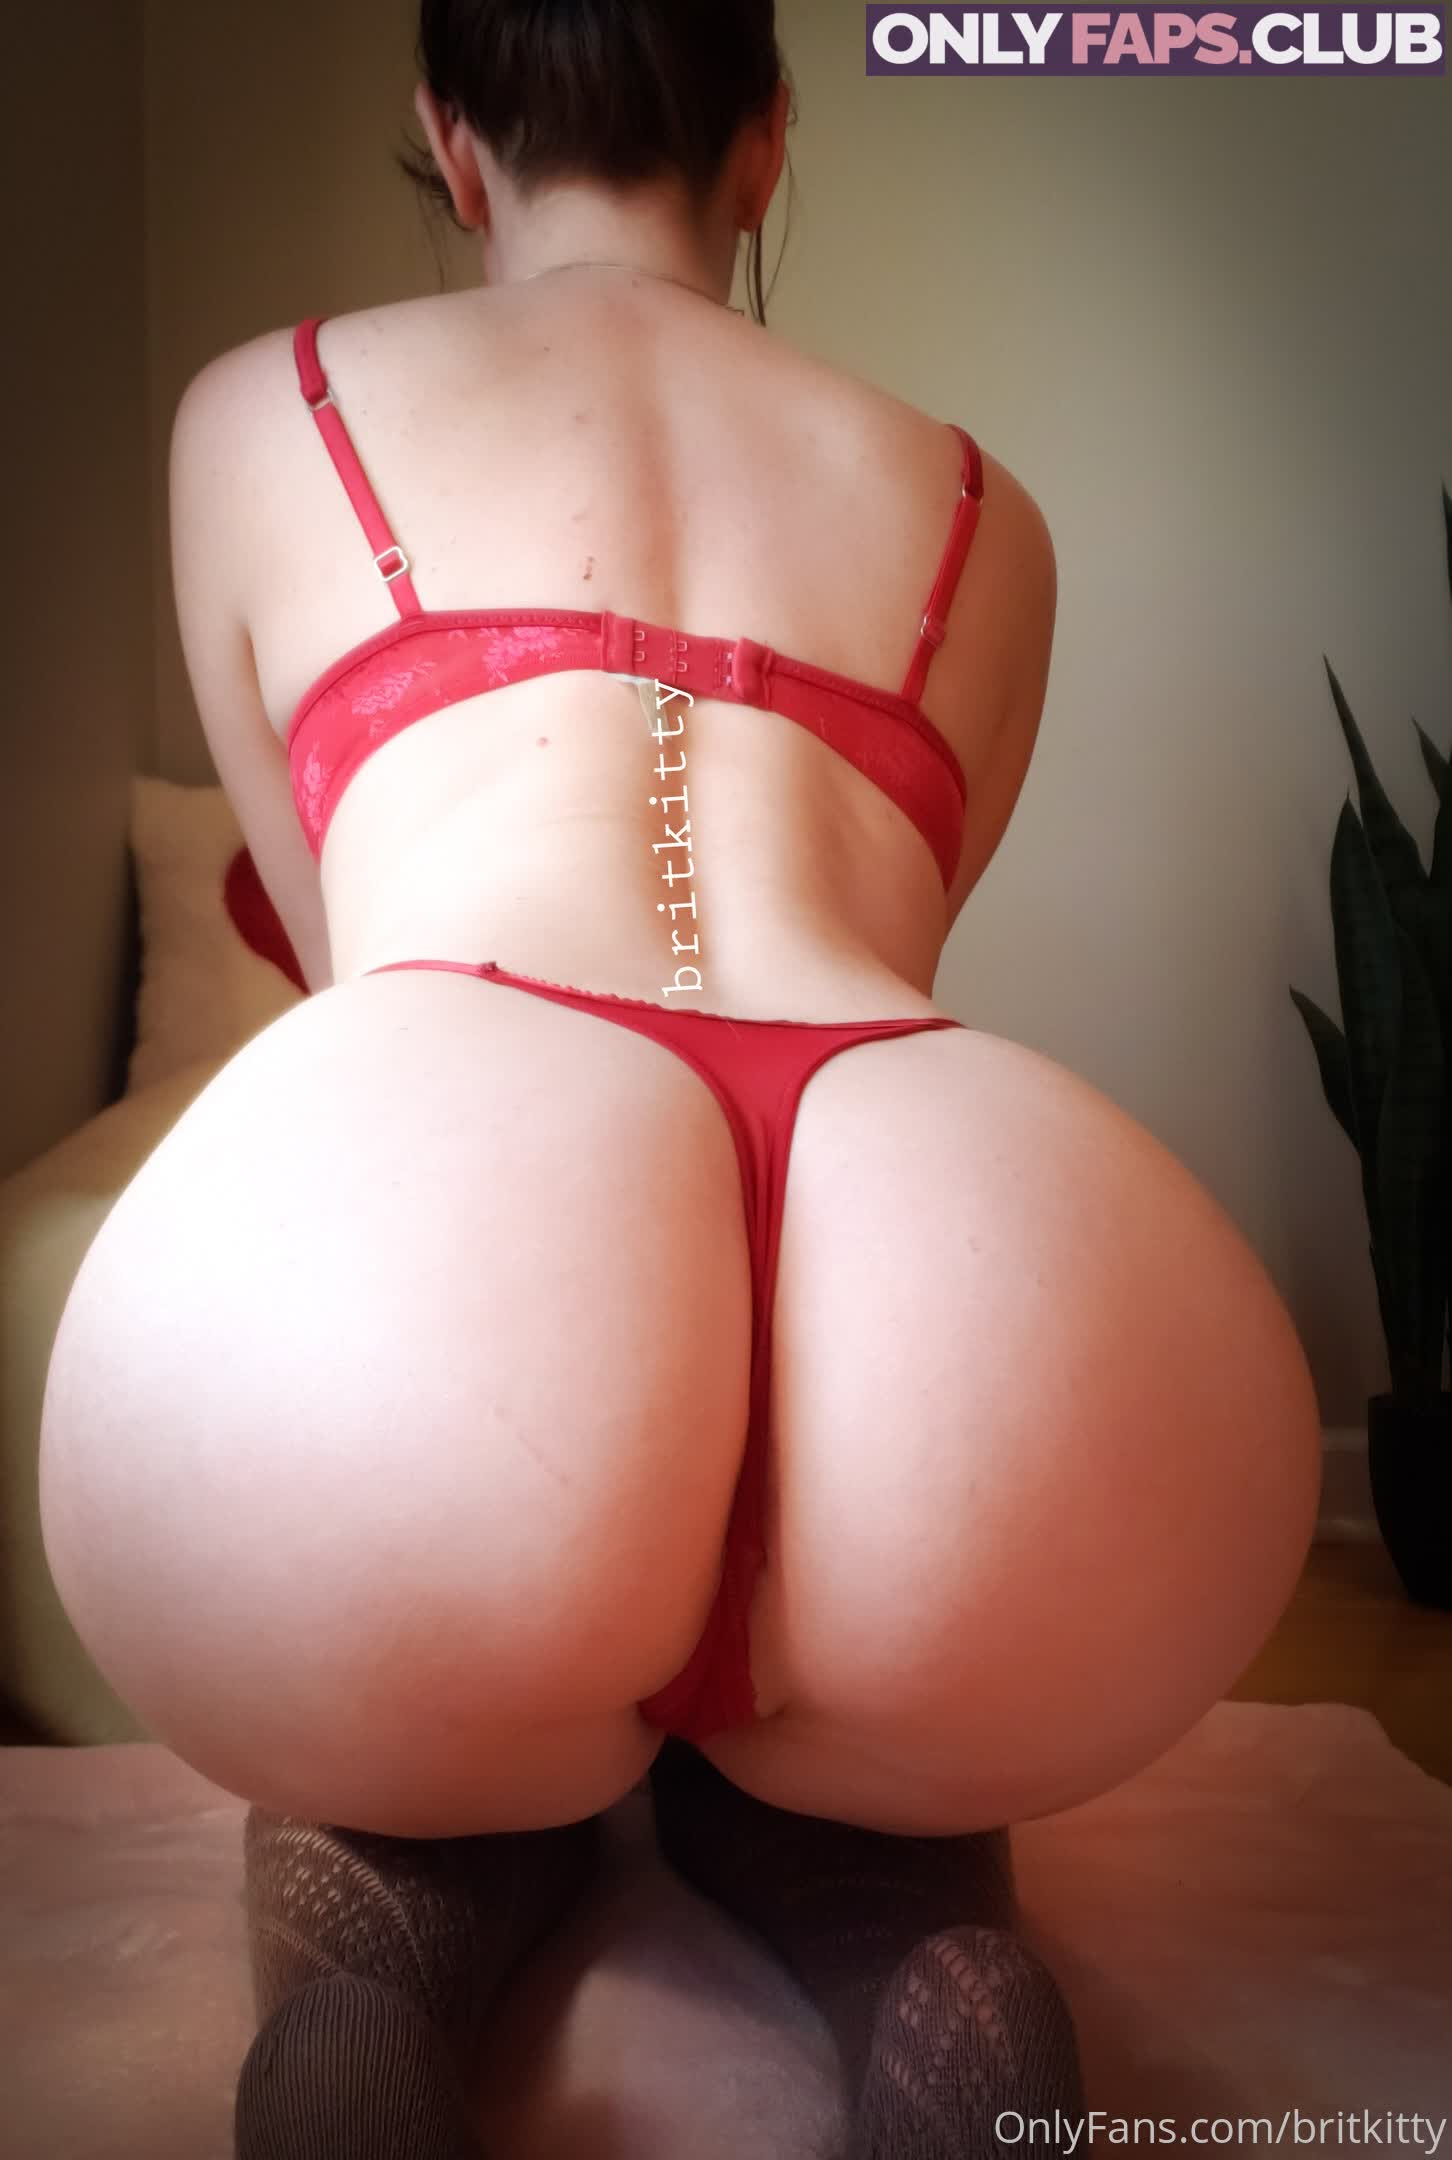 britkitty OnlyFans Leaks (99 Photos)